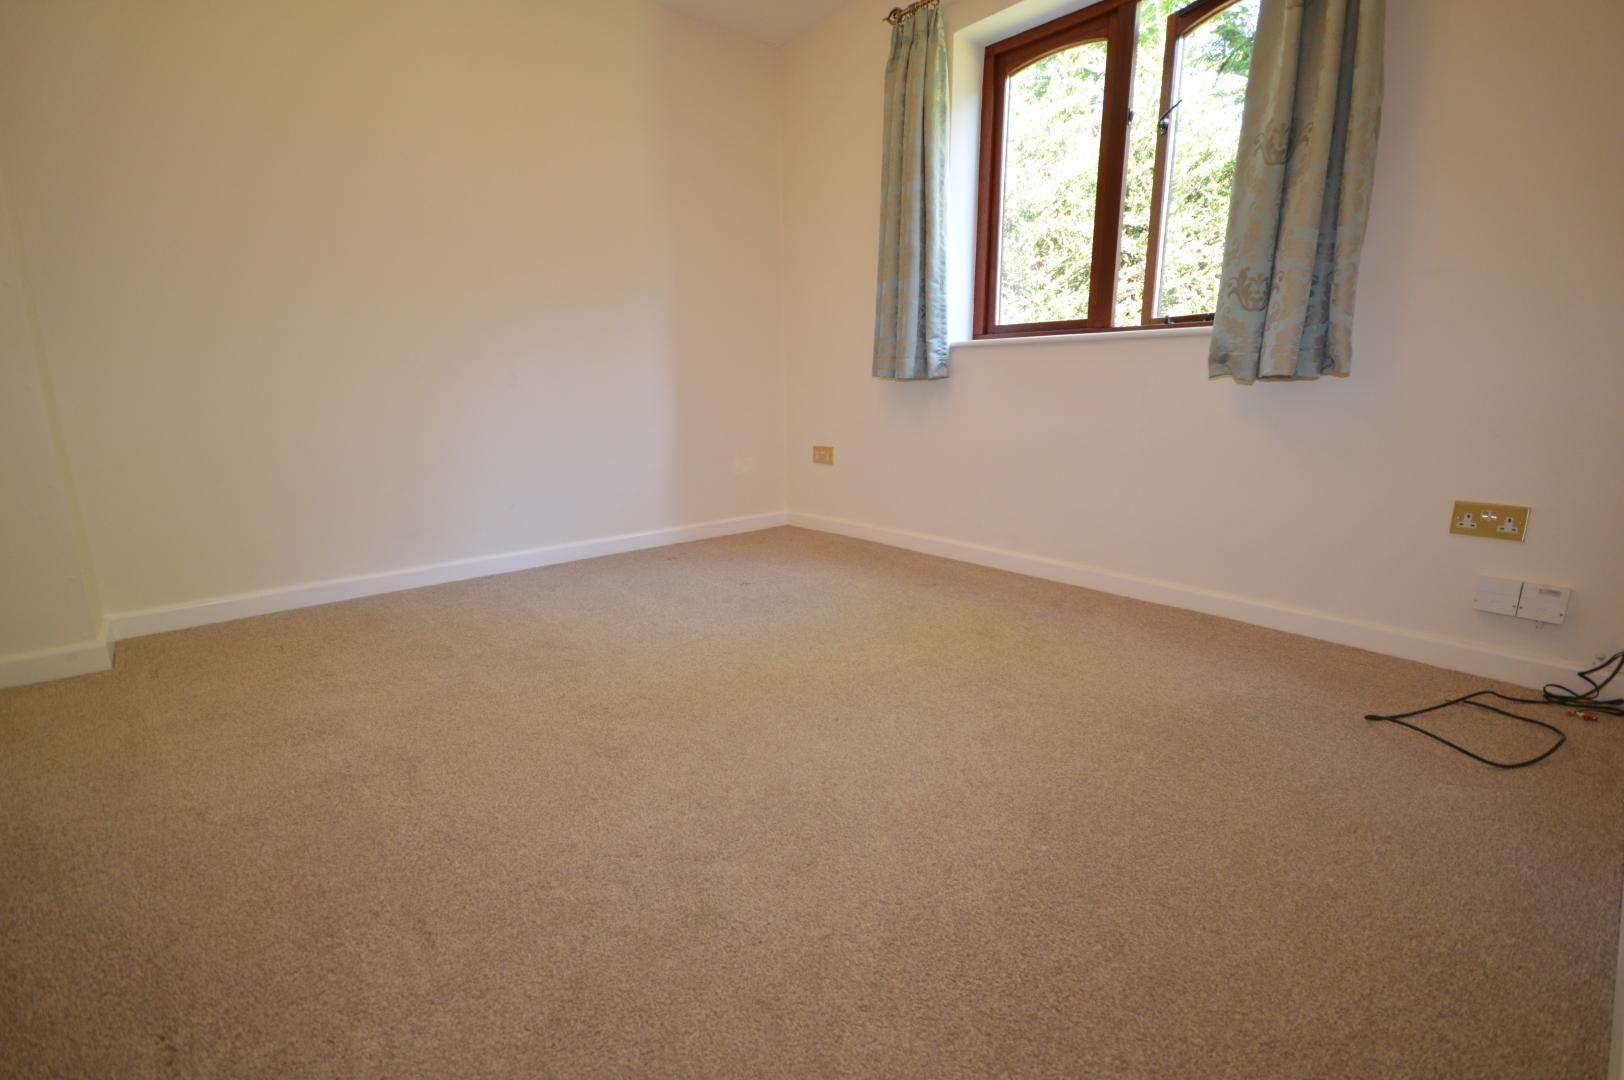 3 bed house to rent 8